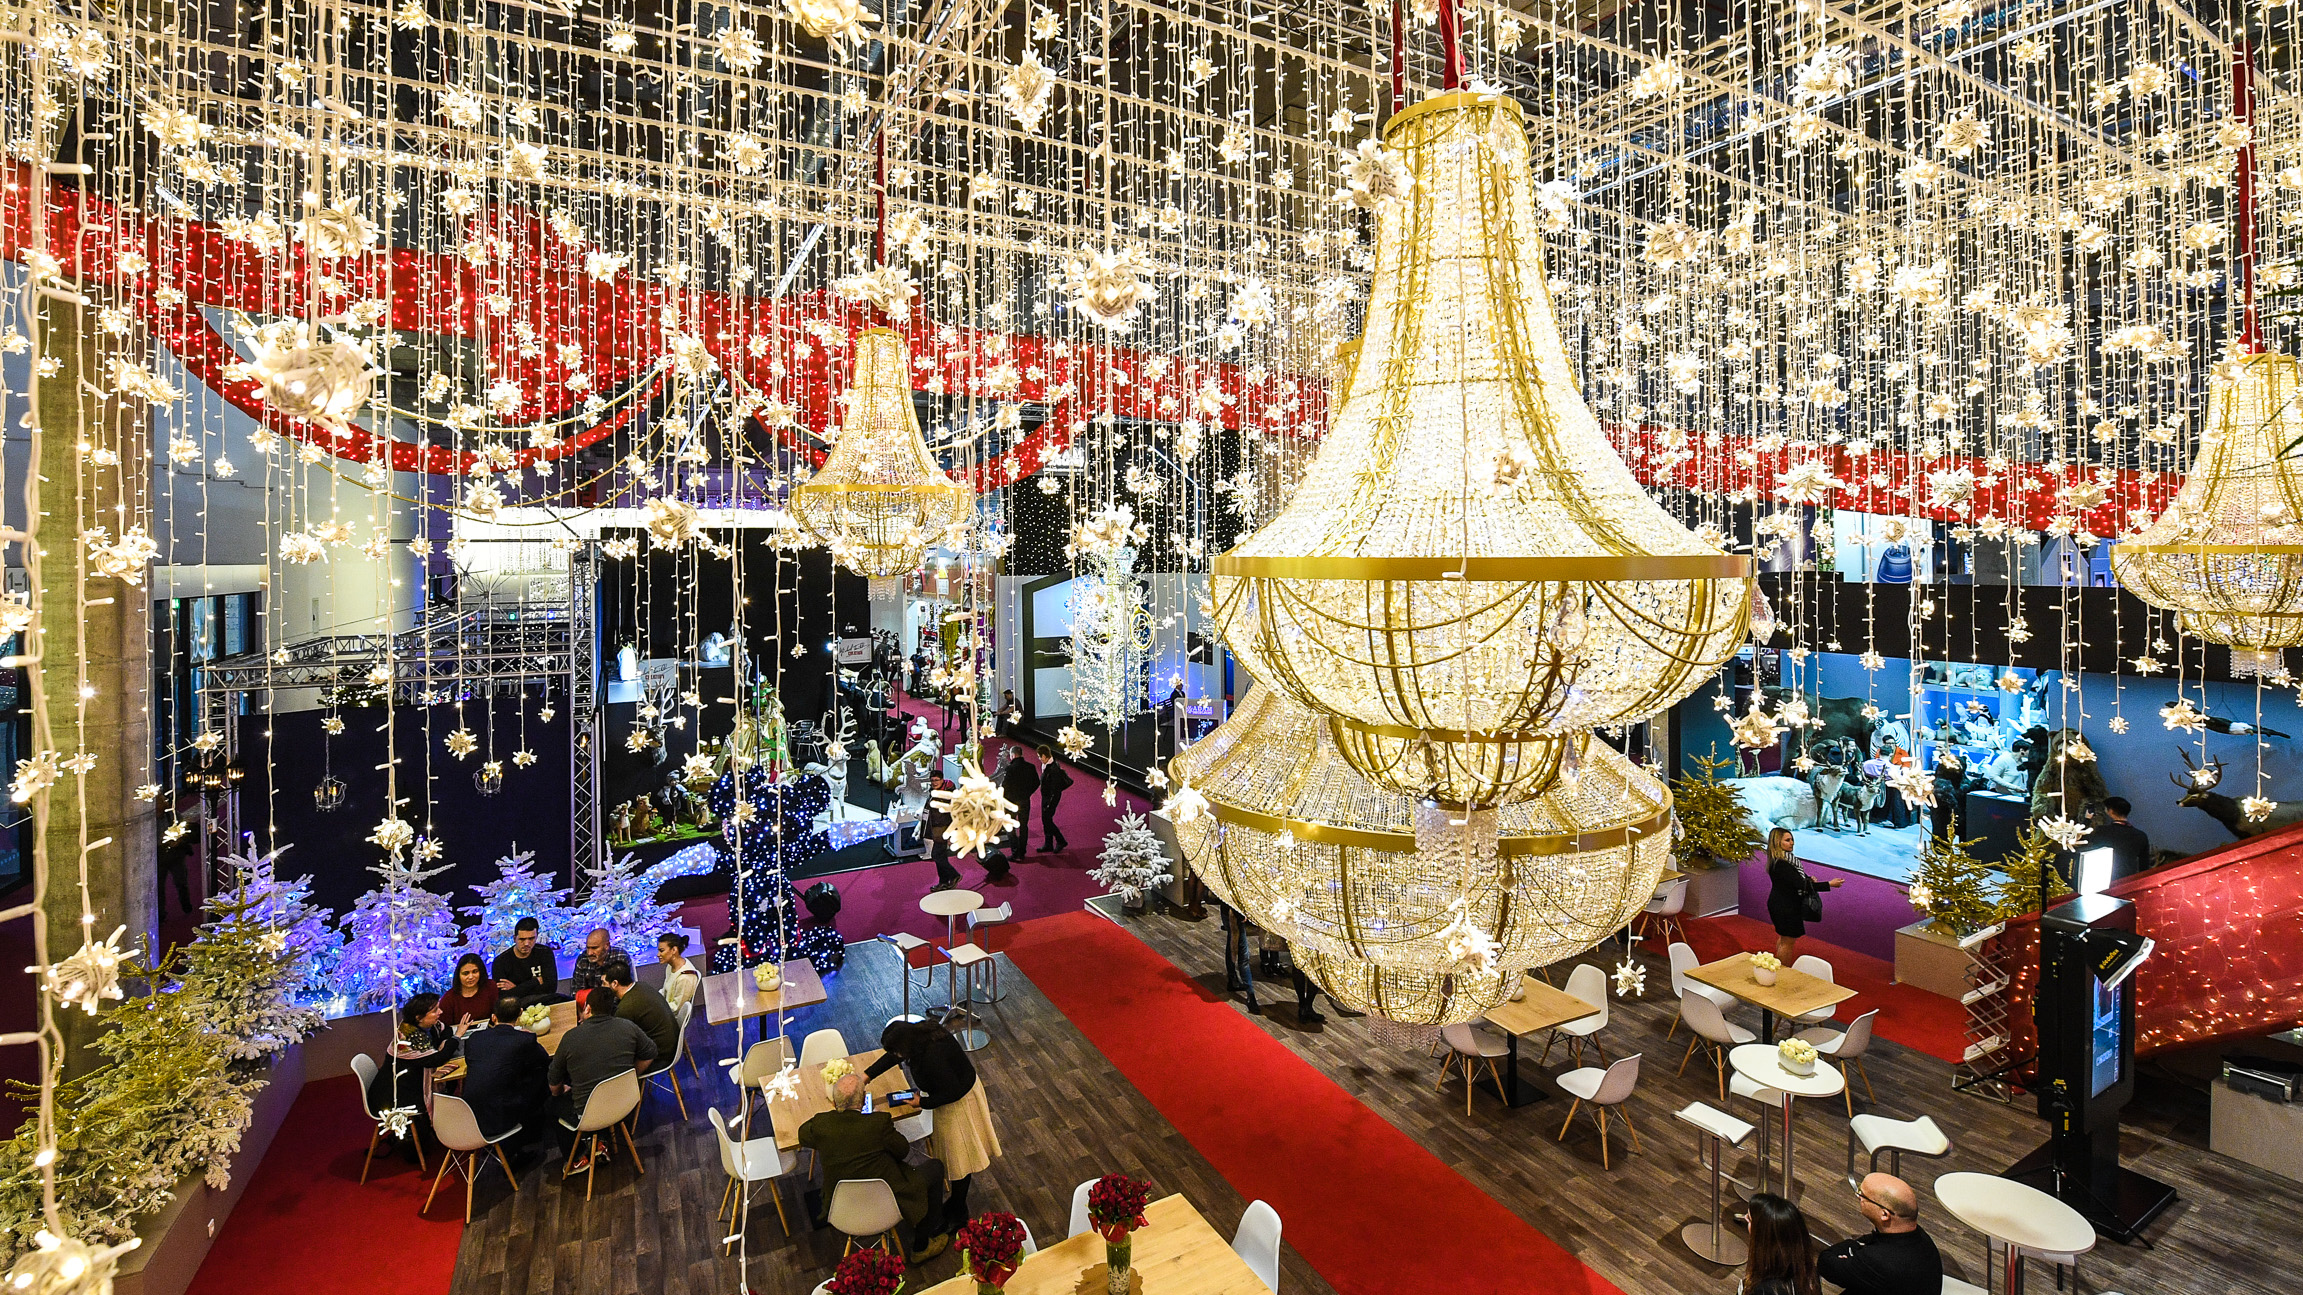 Planung vorbereitung zur christmasworld for Messe frankfurt januar 2017